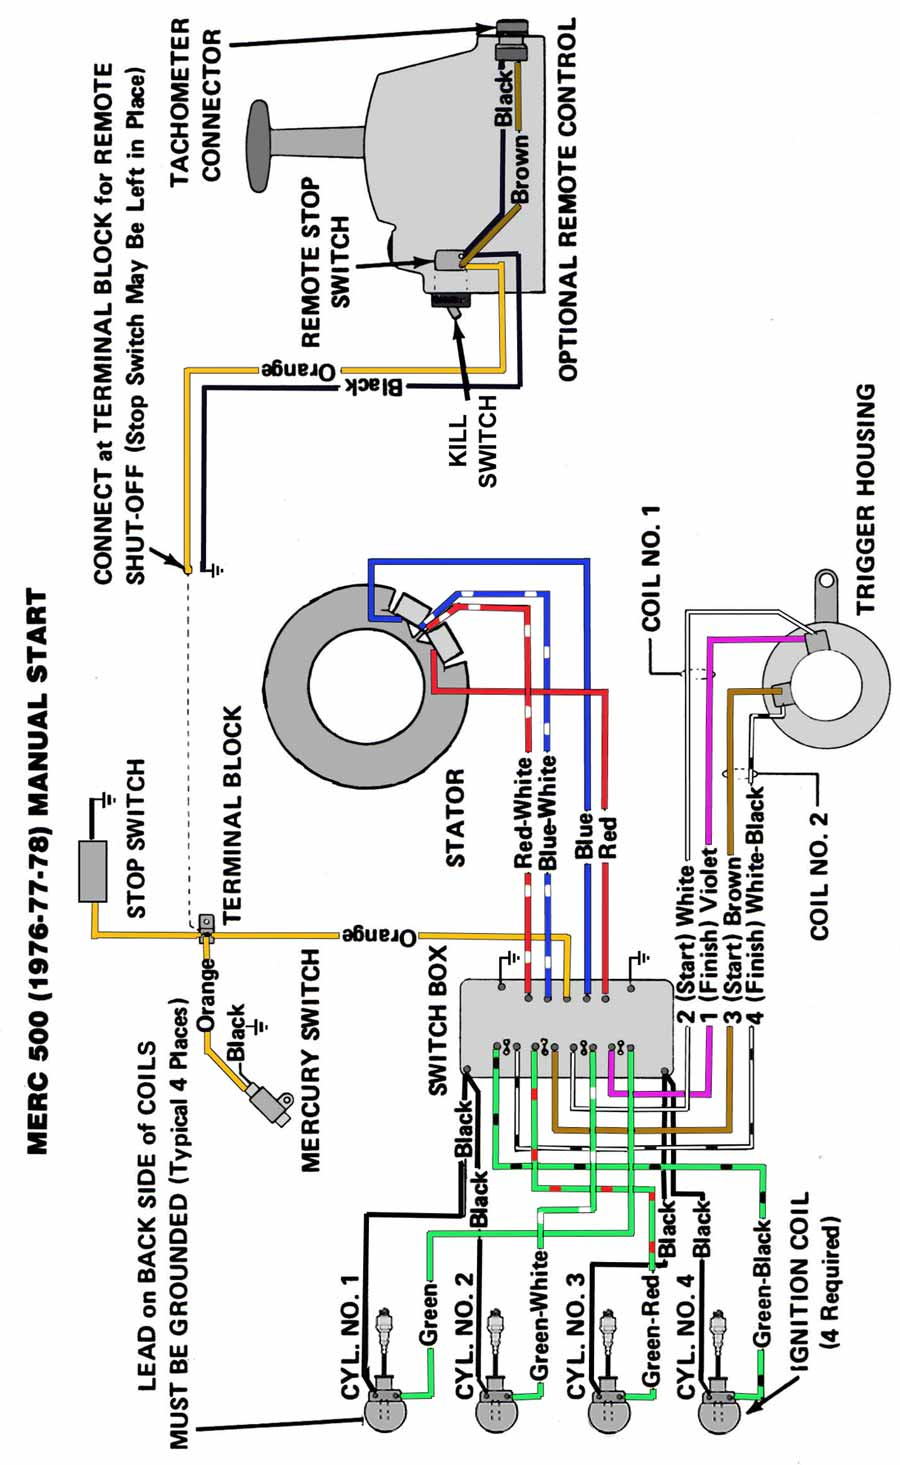 2005 mercury wiring diagram wiring diagram u2022 rh tinyforge co 2005 mercury montego radio wiring diagram 2005 mercury montego radio wiring diagram